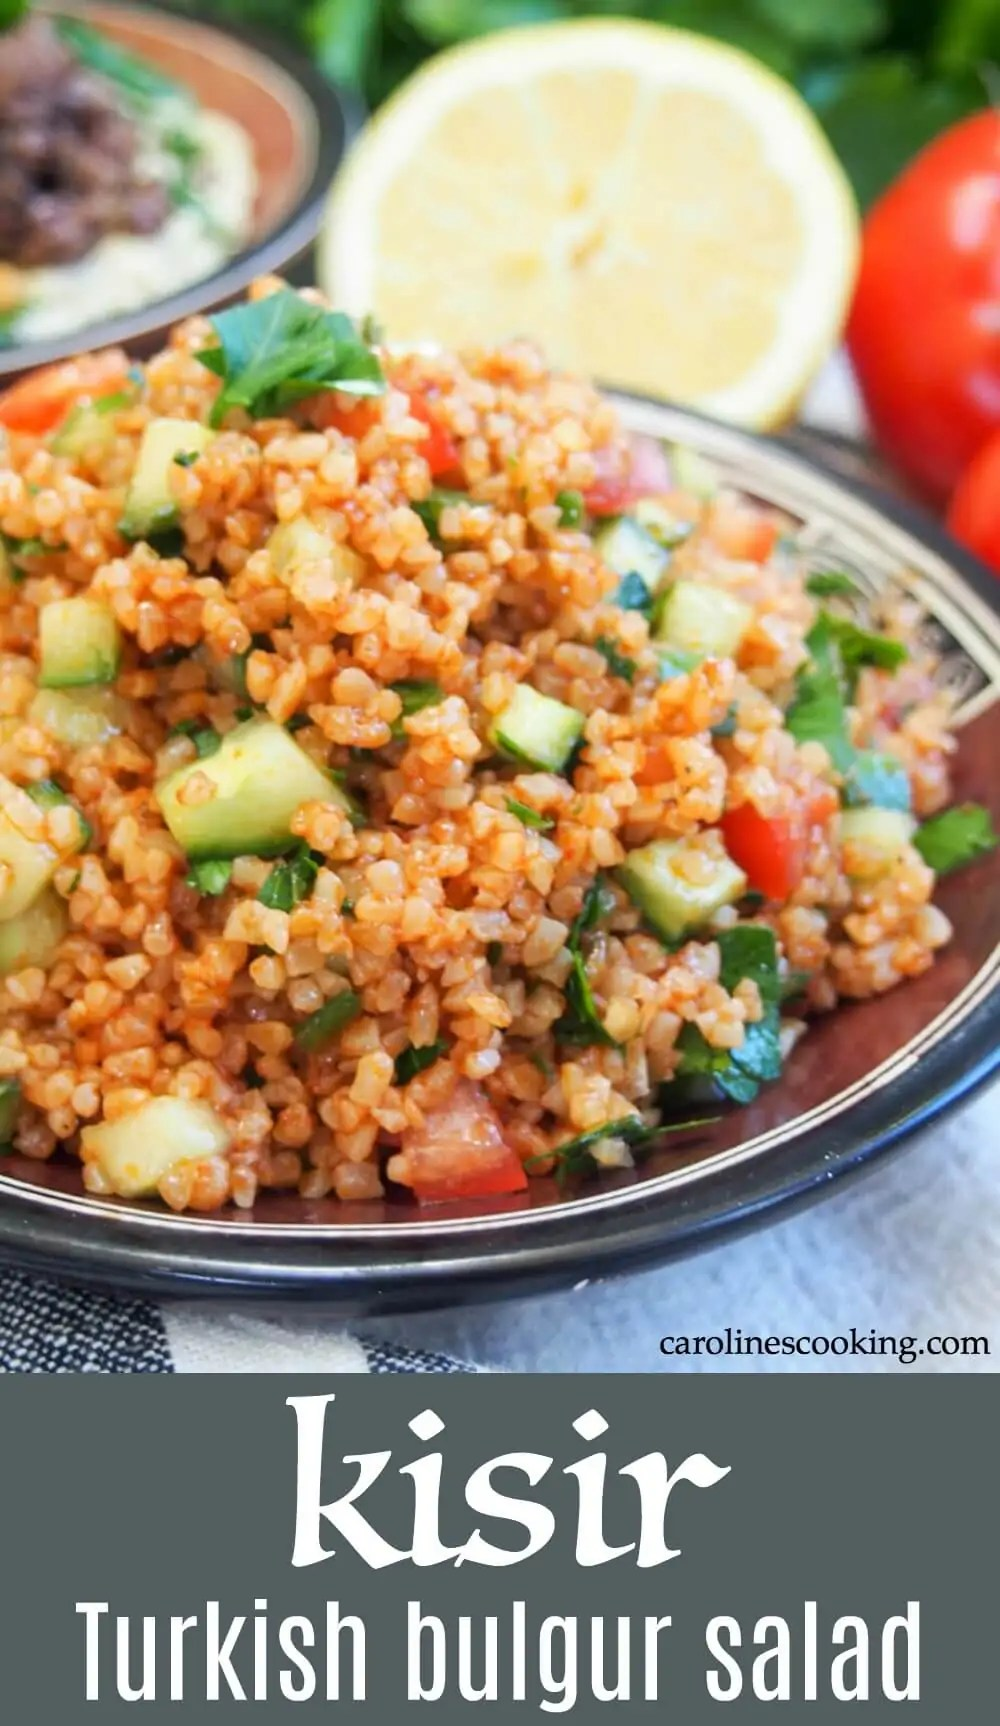 Kisir is a simple, flavor-packed Turkish bulgur salad. It has some similarities to tabbouleh but definitely deserves it's own place on a meze or lunch table with it's wonderful tart-savory flavors. It's quick and easy to make, vegan and packed with vegetables and whole grains. A tasty side or enjoy as a lunch, it also packs up well. #bulgursalad #vegan #turkishsalad